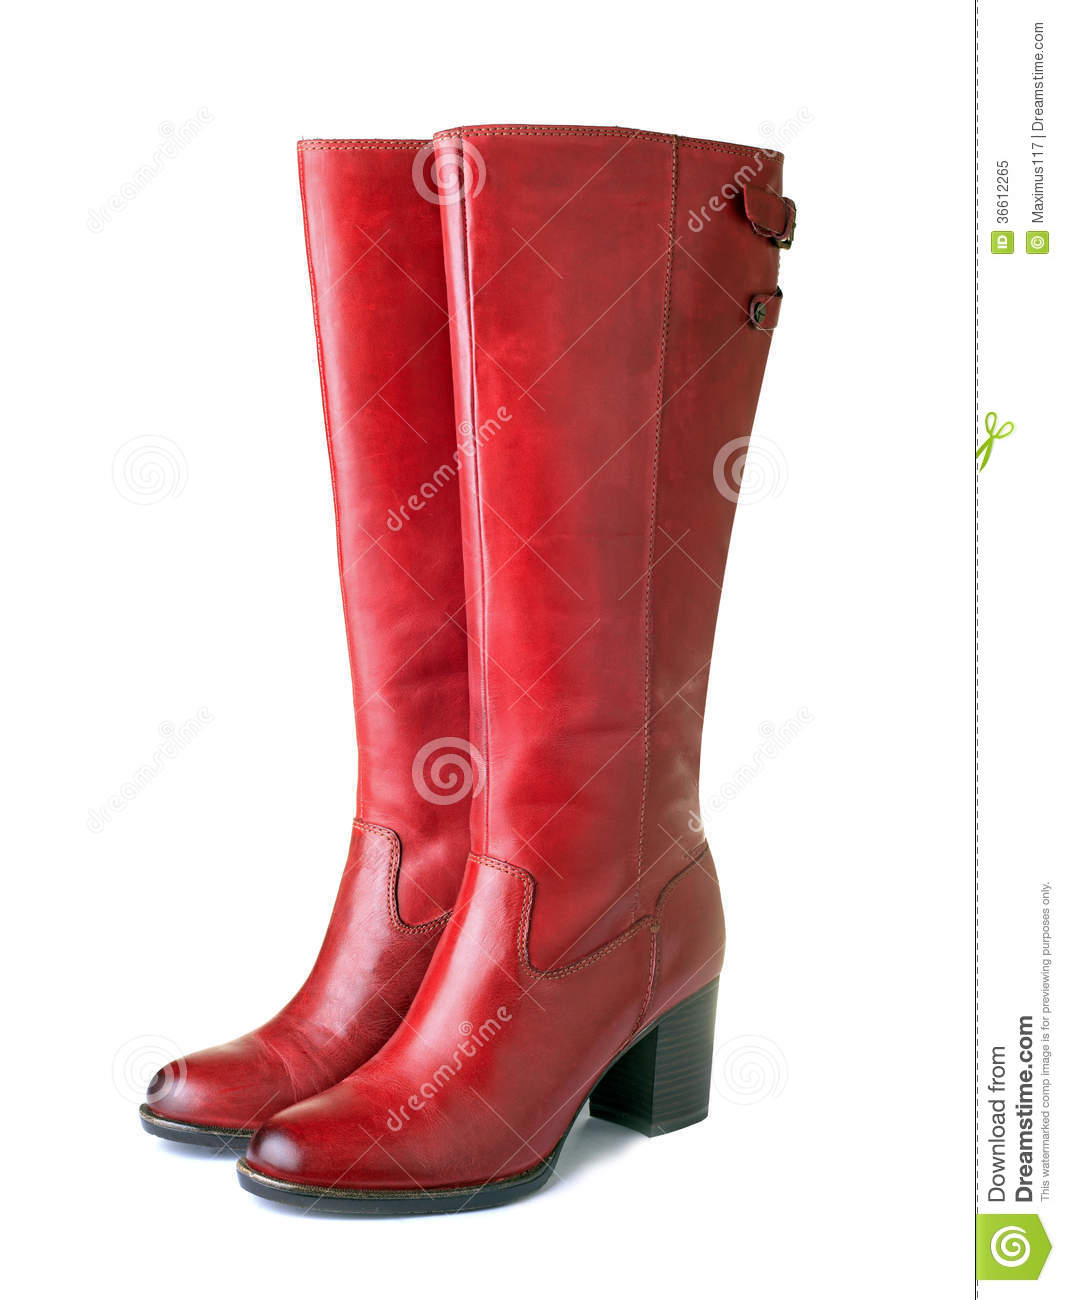 Elegant pair of womens red boots isolated on a white background.